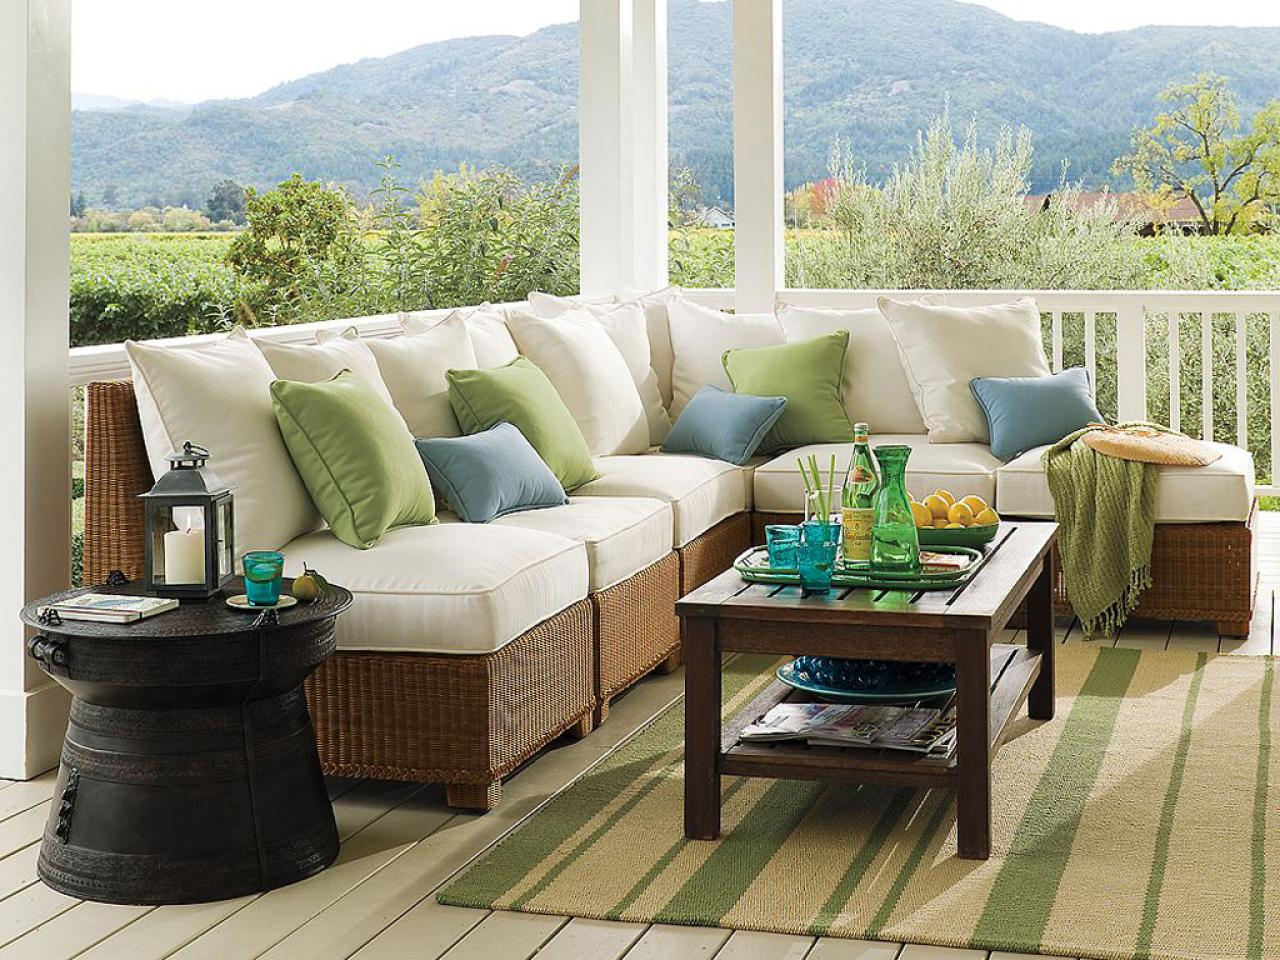 Accessories for garden furniture outdoor furniture options and ideas theydesign pertaining to patio furniture  designs LTPIJDJ